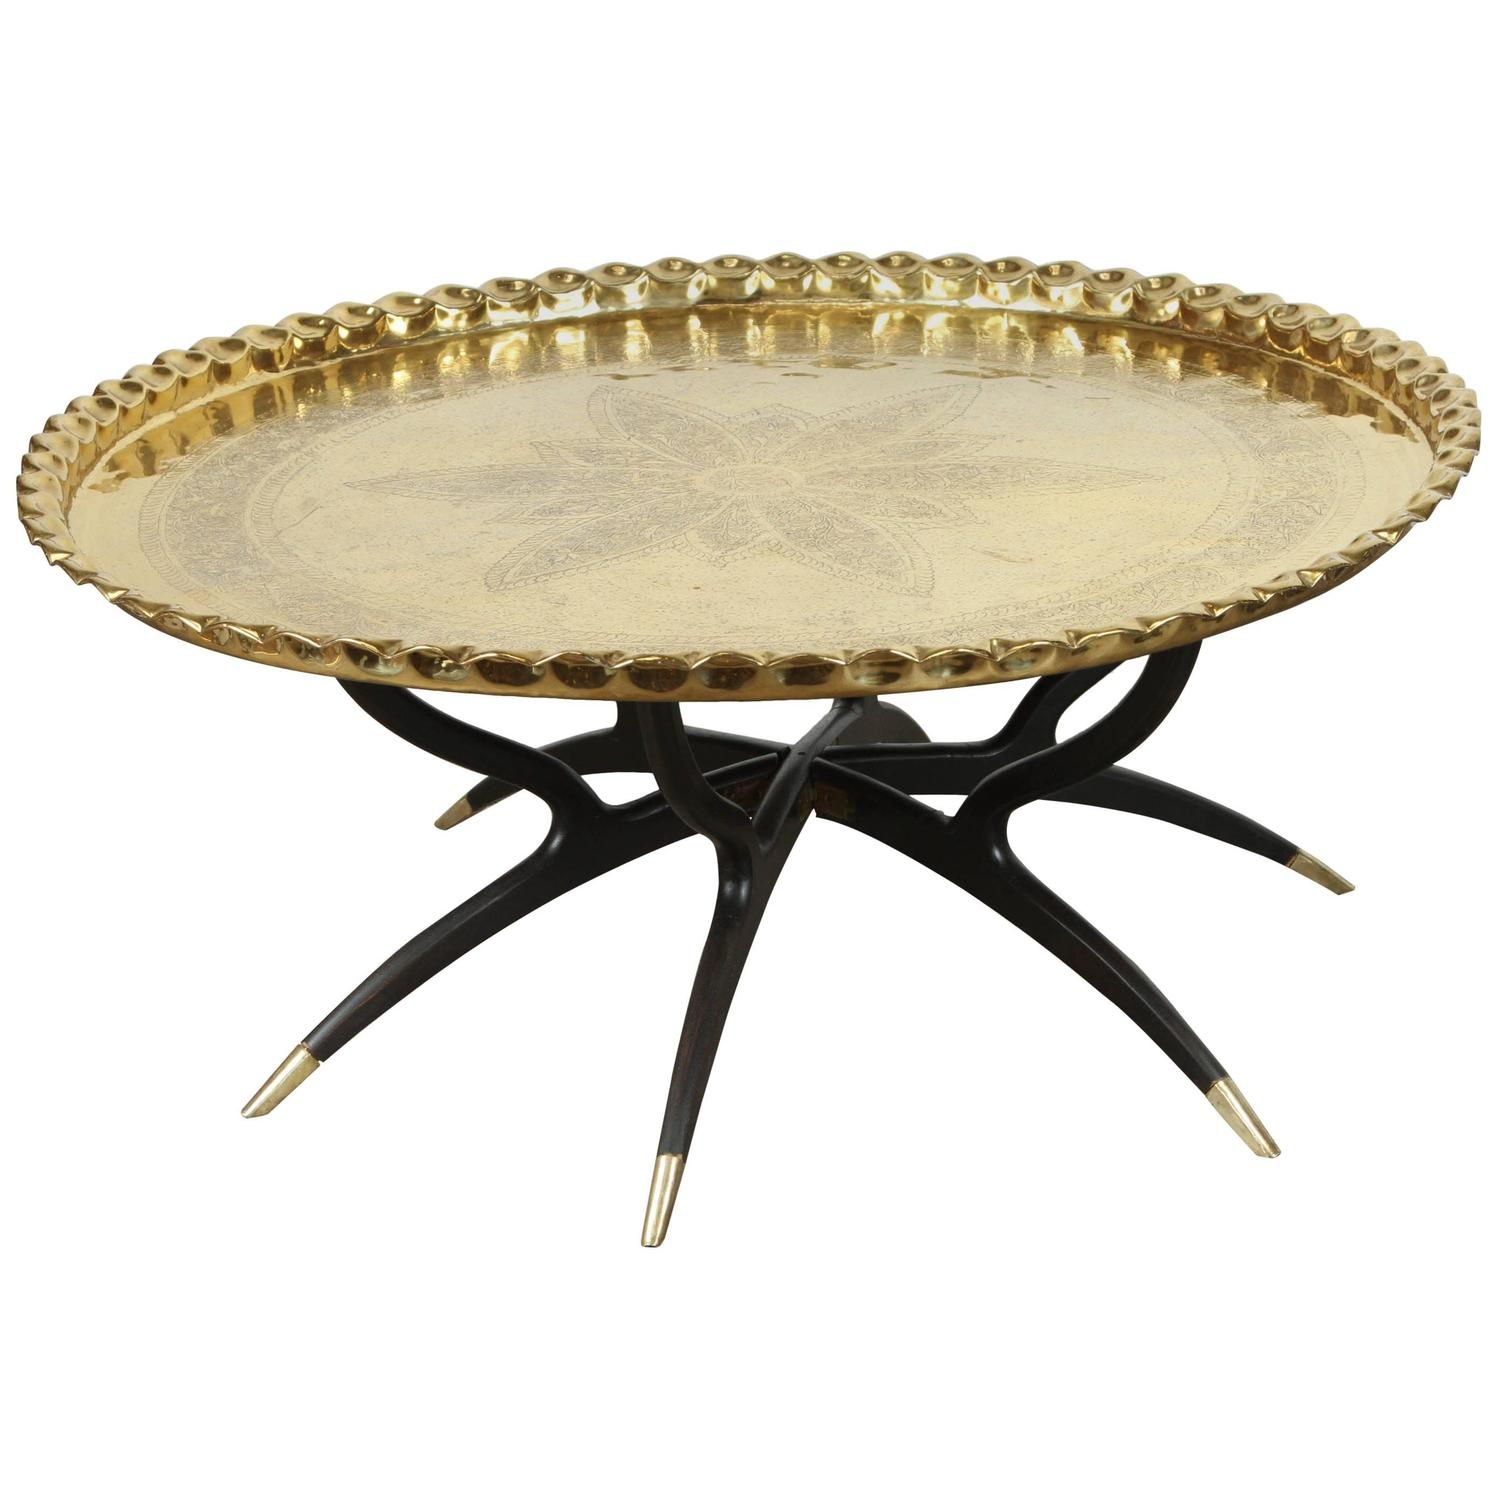 Large Polished Brass Tray Coffee Table On Spider-Leg For